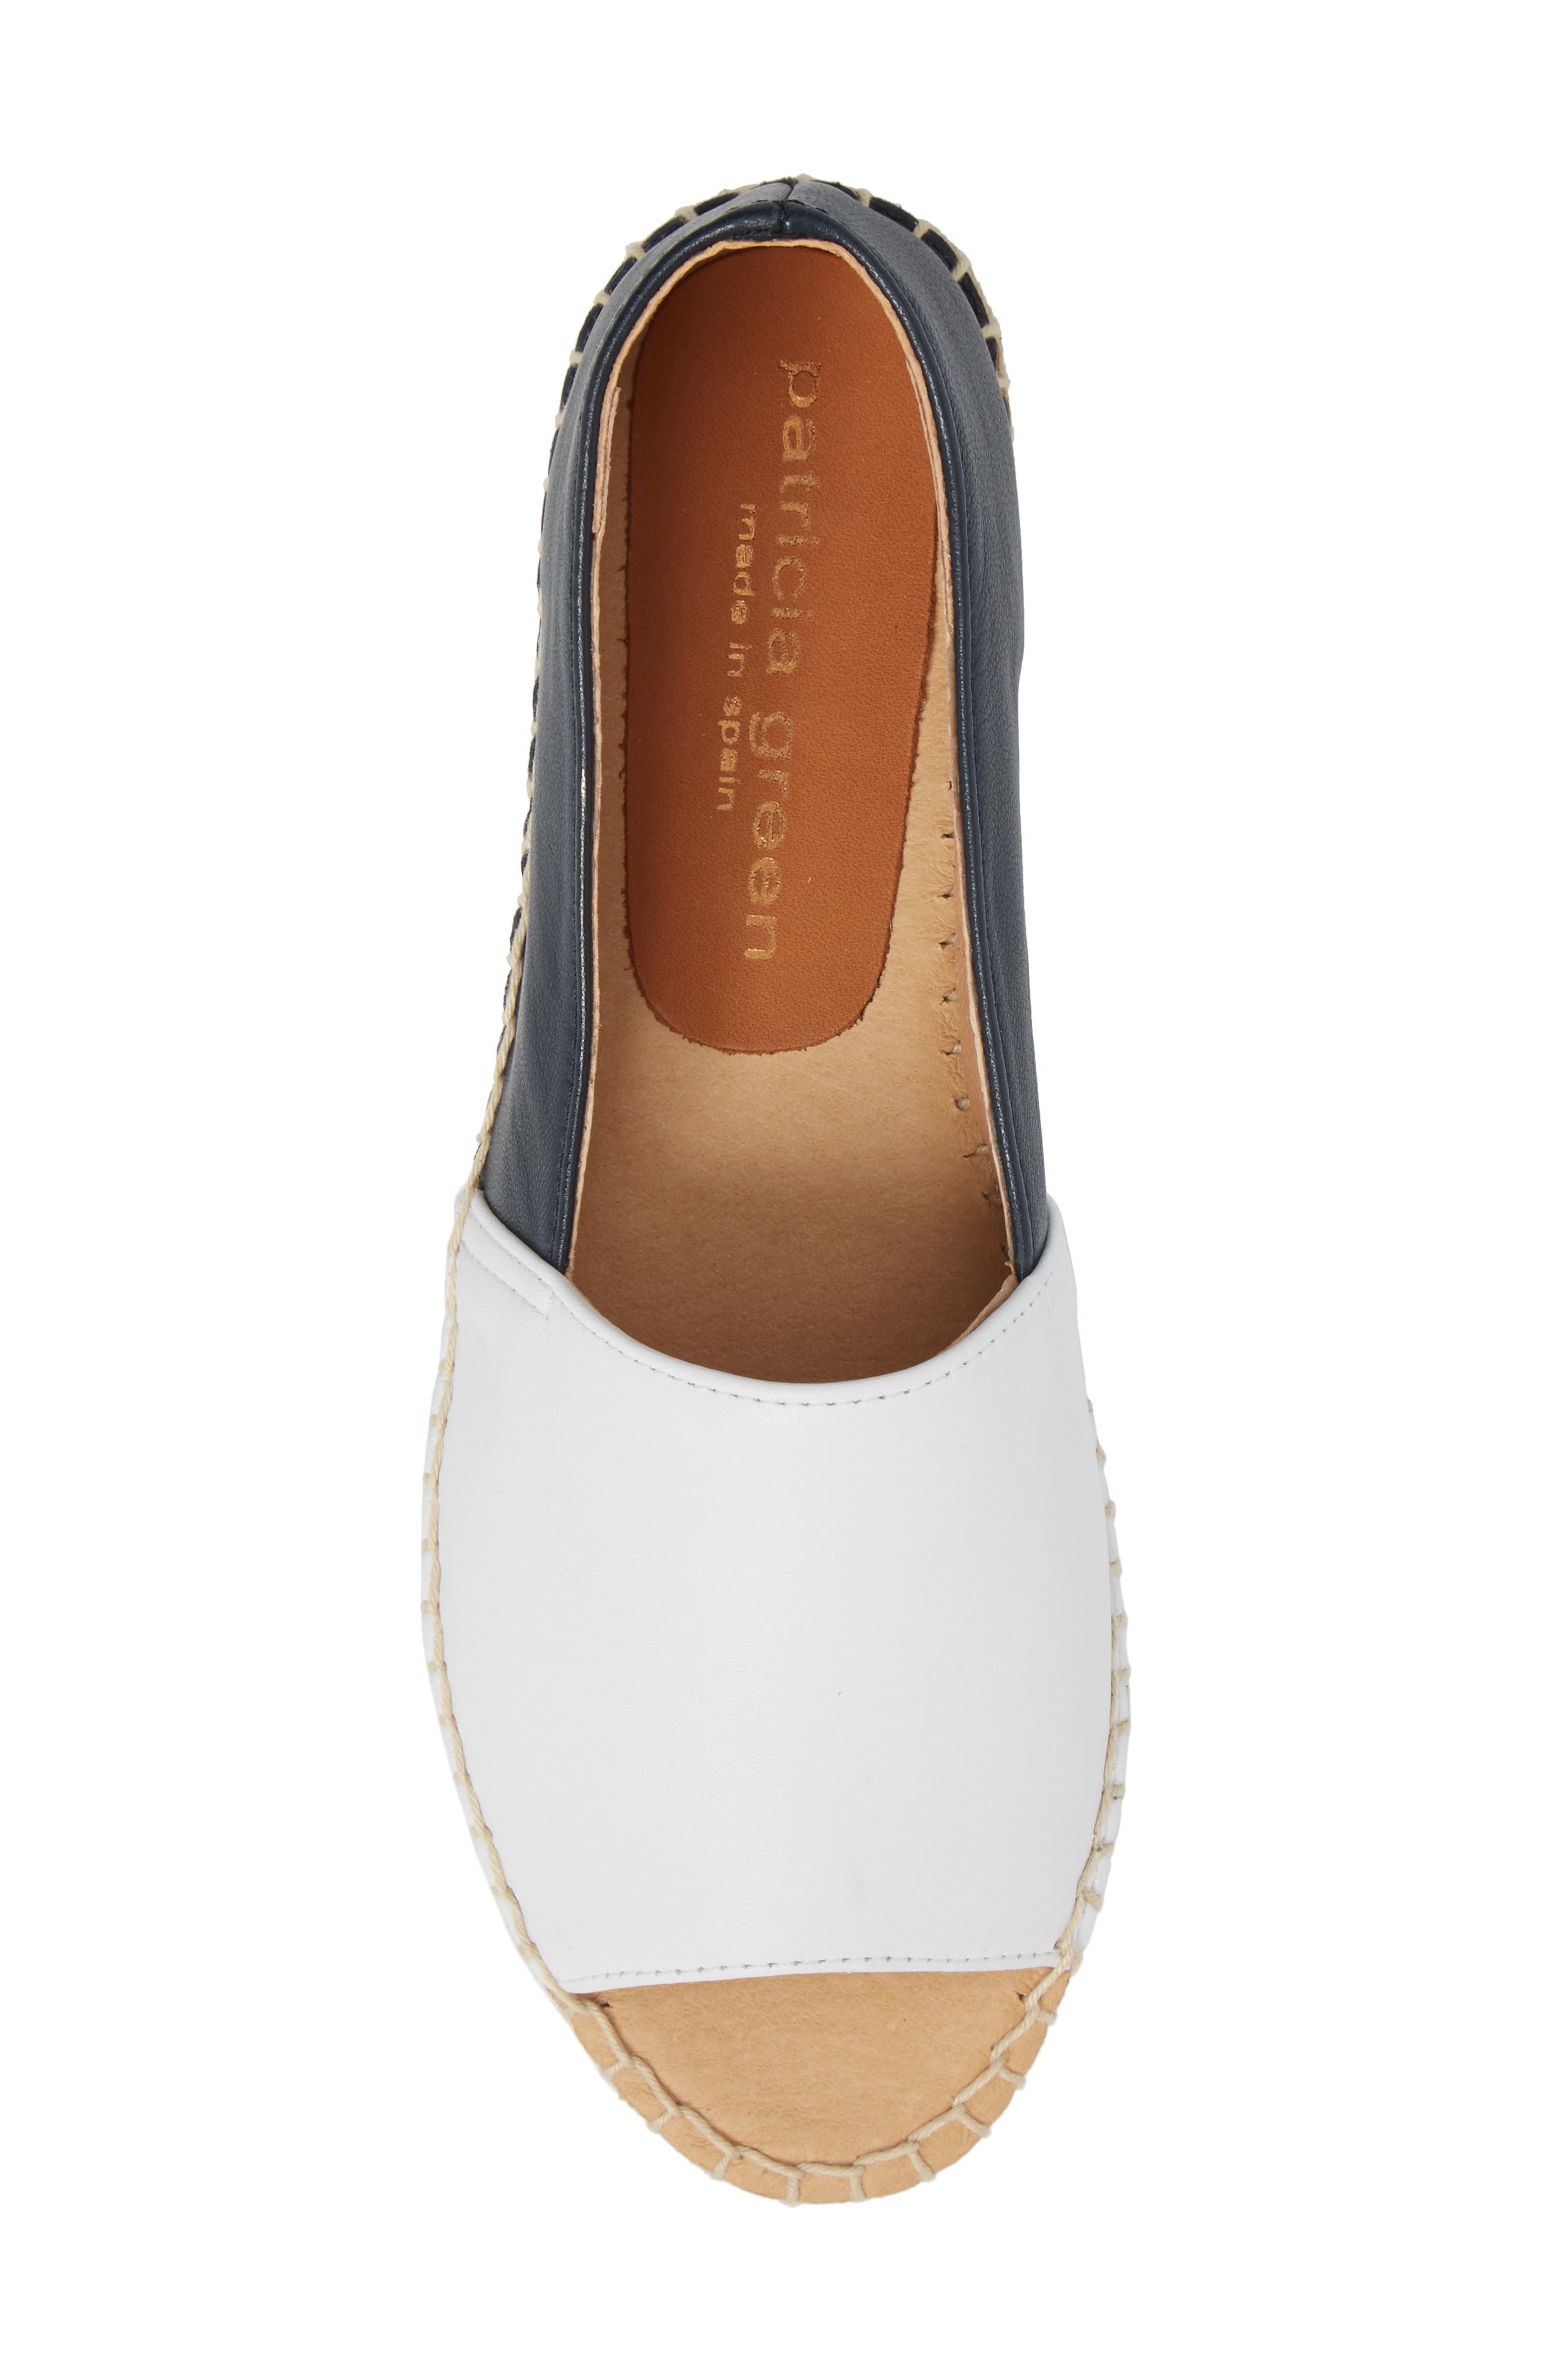 Milly Espadrille,                             Alternate thumbnail 5, color,                             415